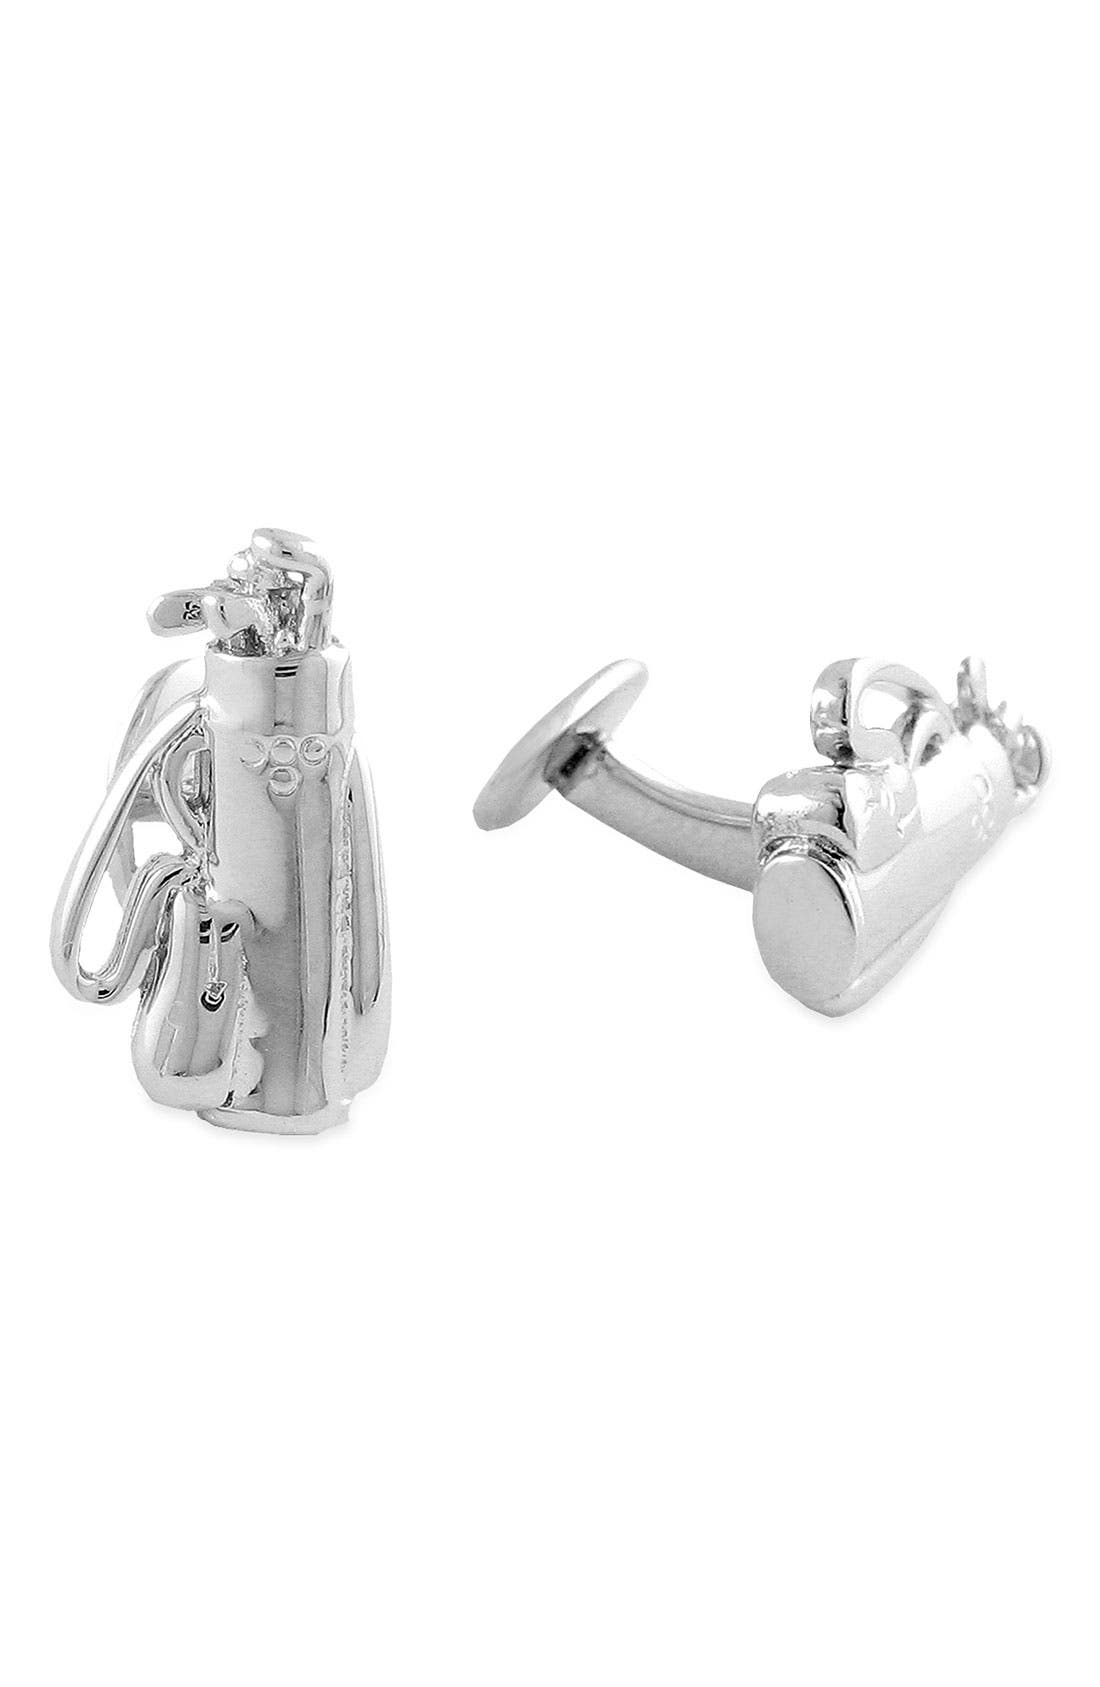 David Donahue 'Golf' Sterling Silver Cuff Links